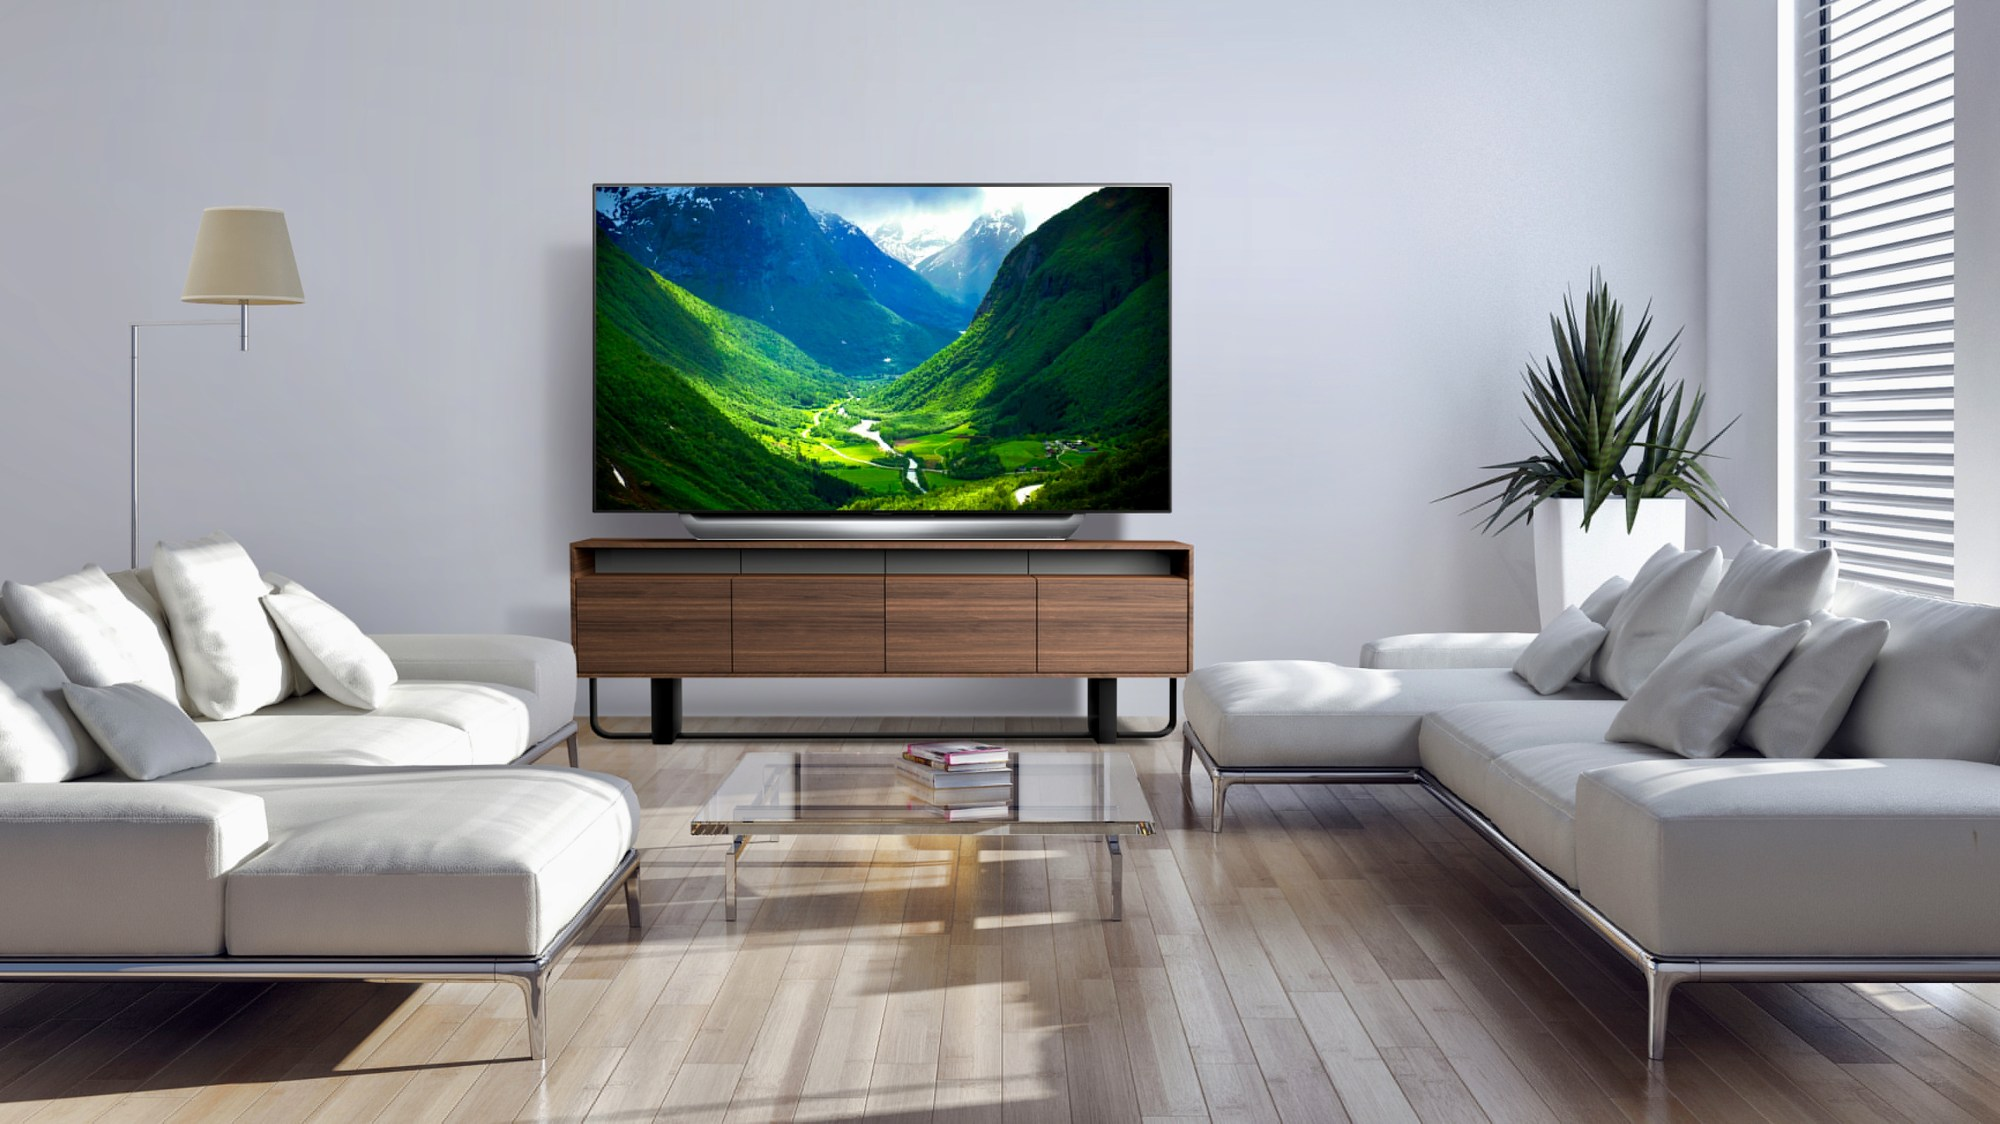 hight resolution of best tv 2019 the best uhd 4k big screen television to buy t3